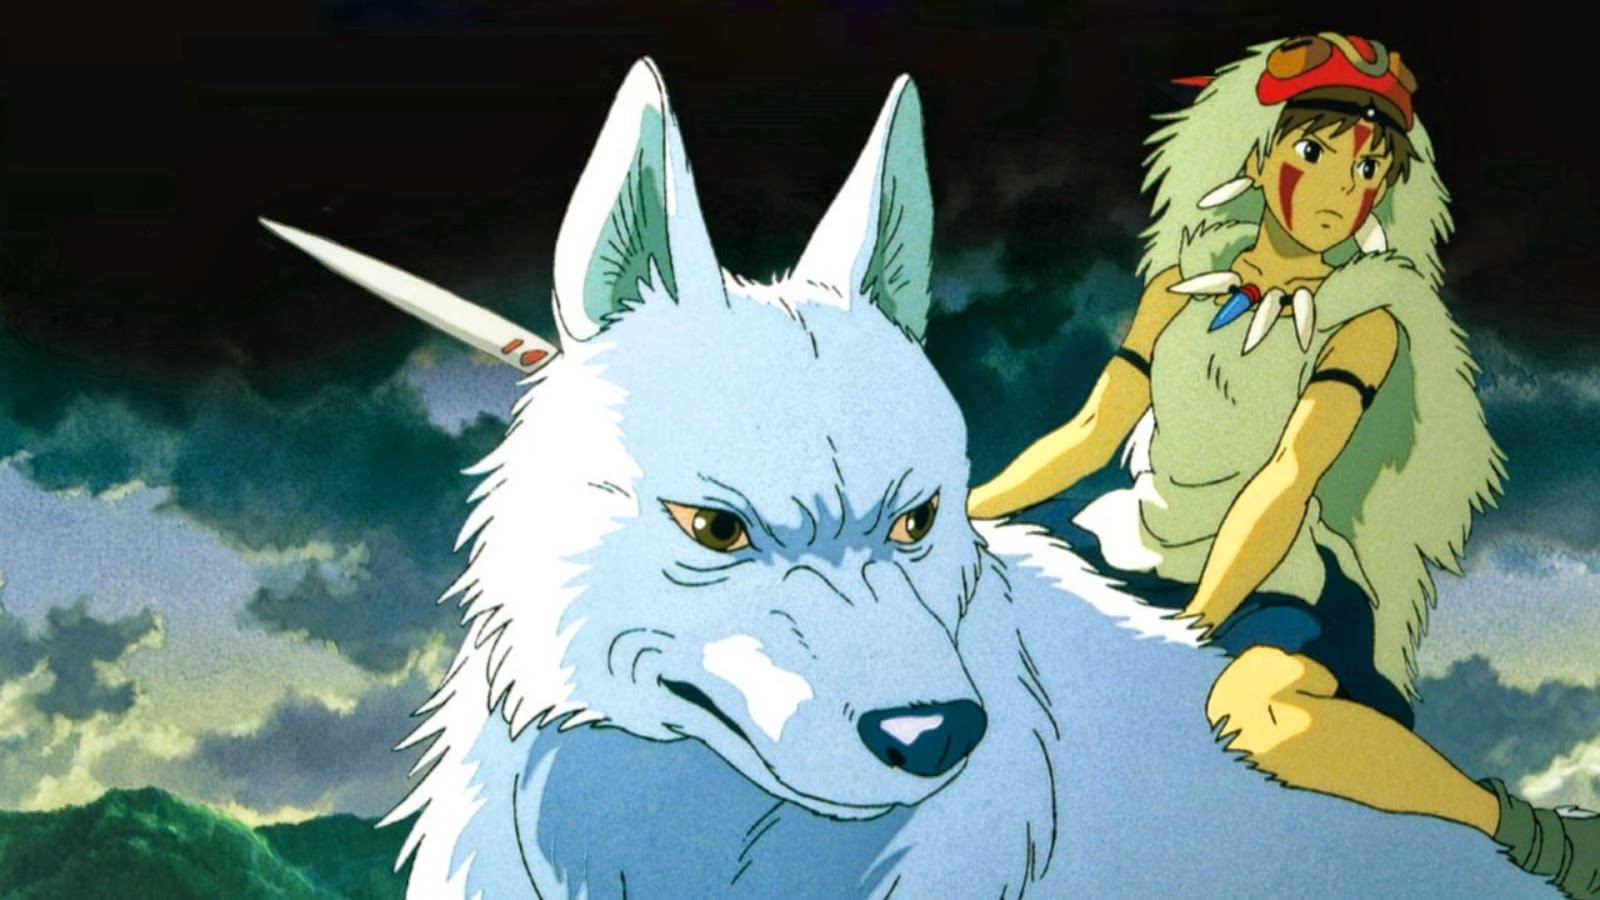 Princess mononoke photos5